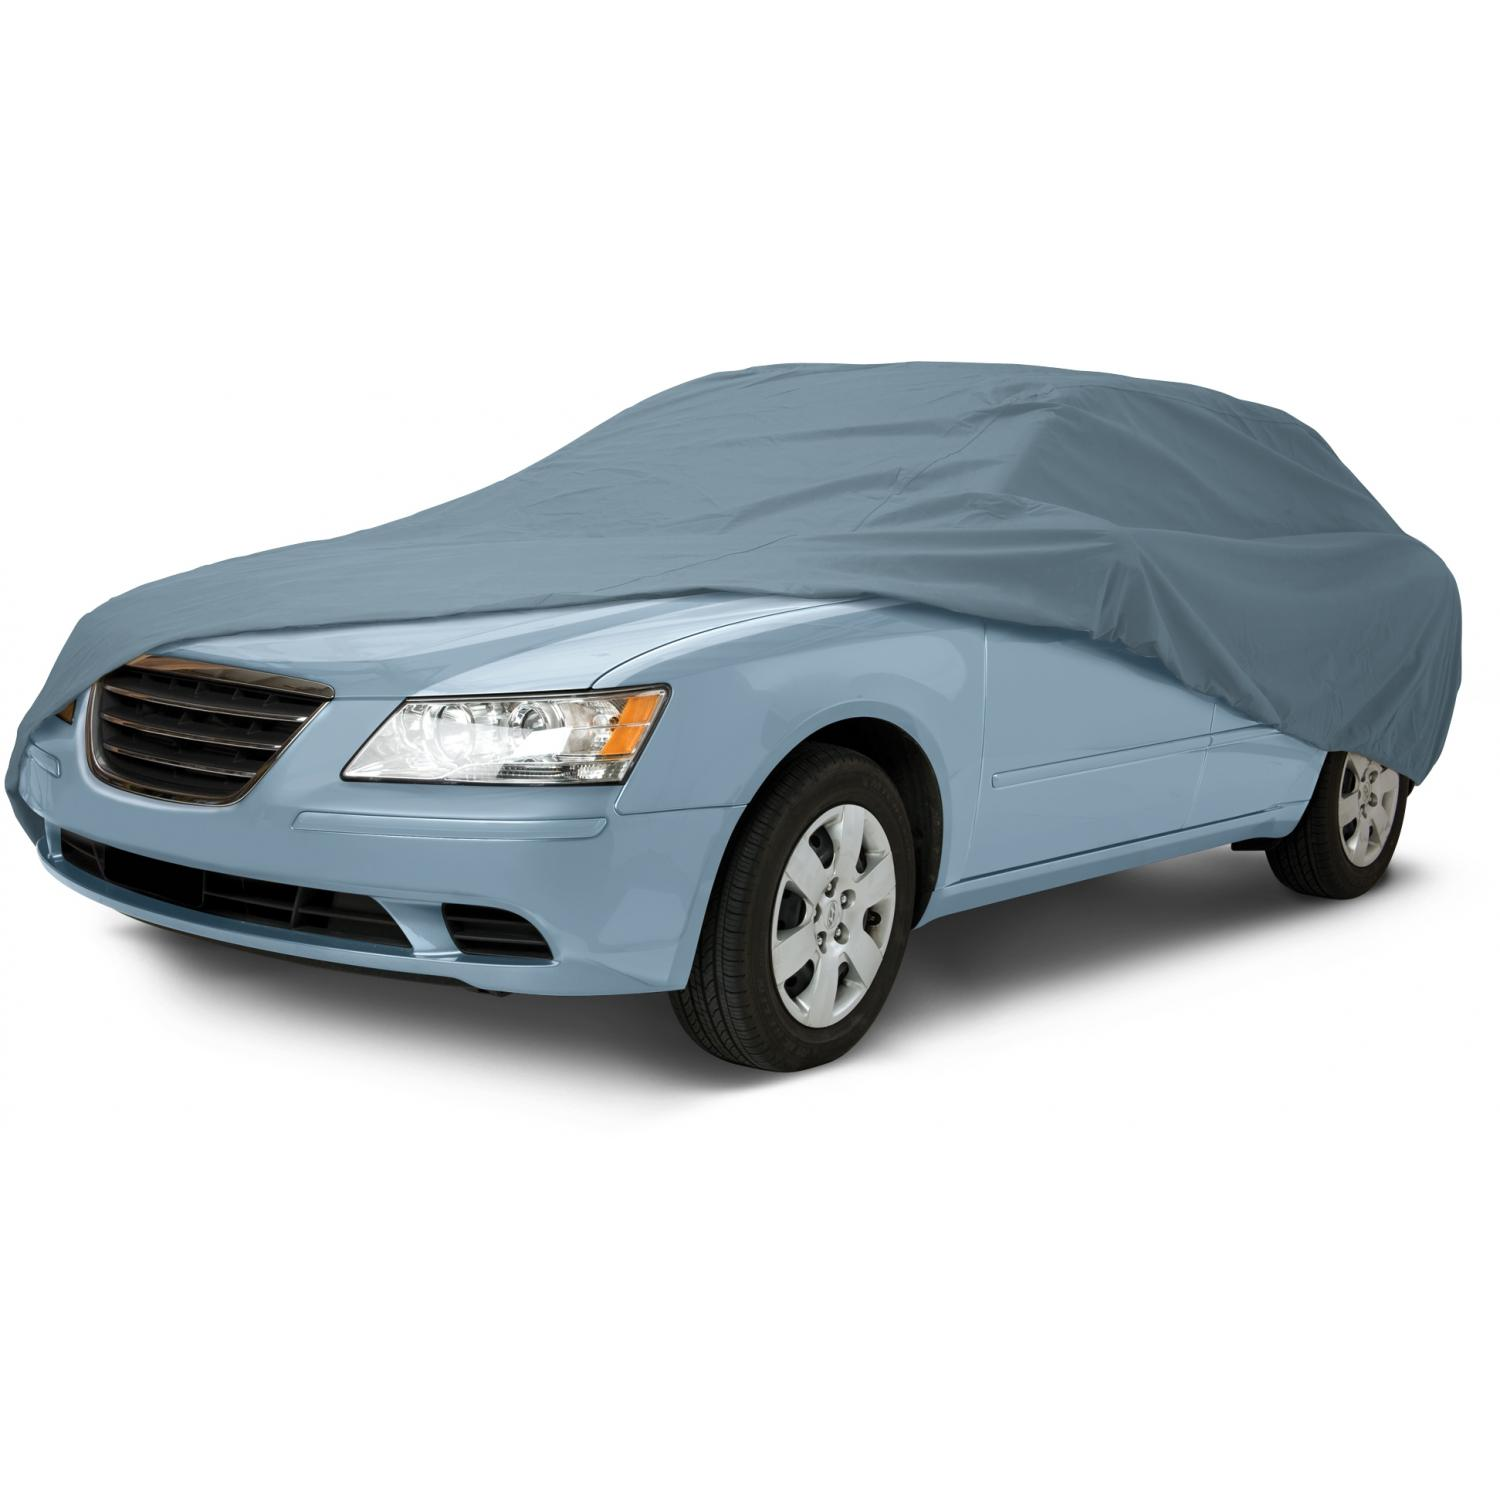 Classic Accessories PolyPRO 1 Vehicle Cover - Compact Hatchback